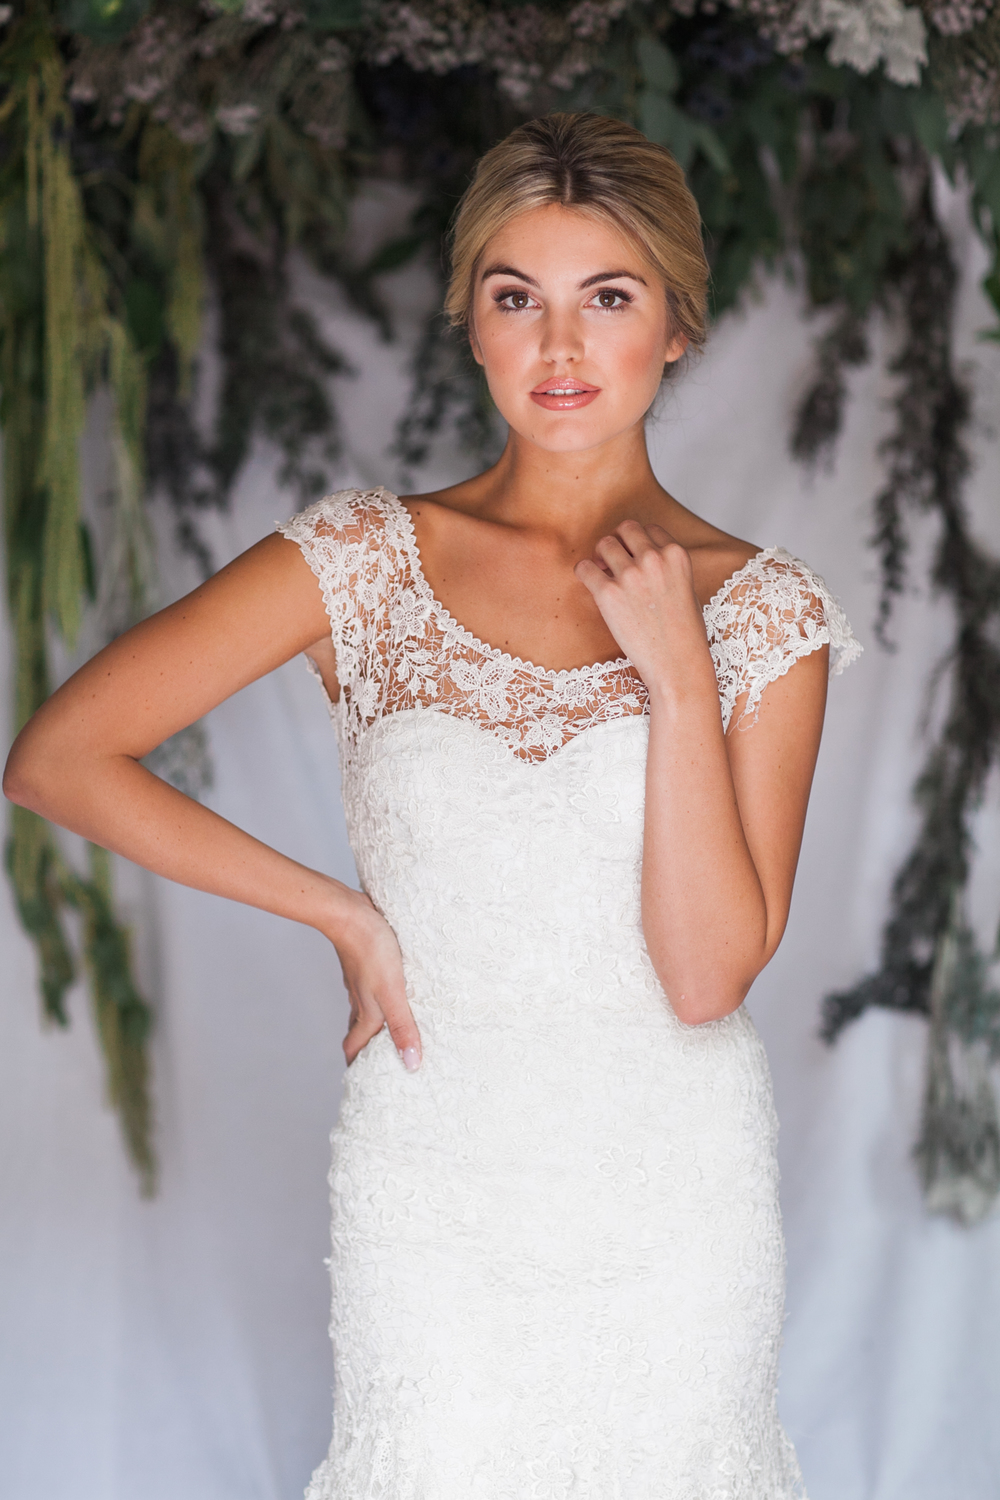 the lela rose wedding collection can be found in speciality bridal shops throughout the country and we are elated to be the exclusive bridal shop in